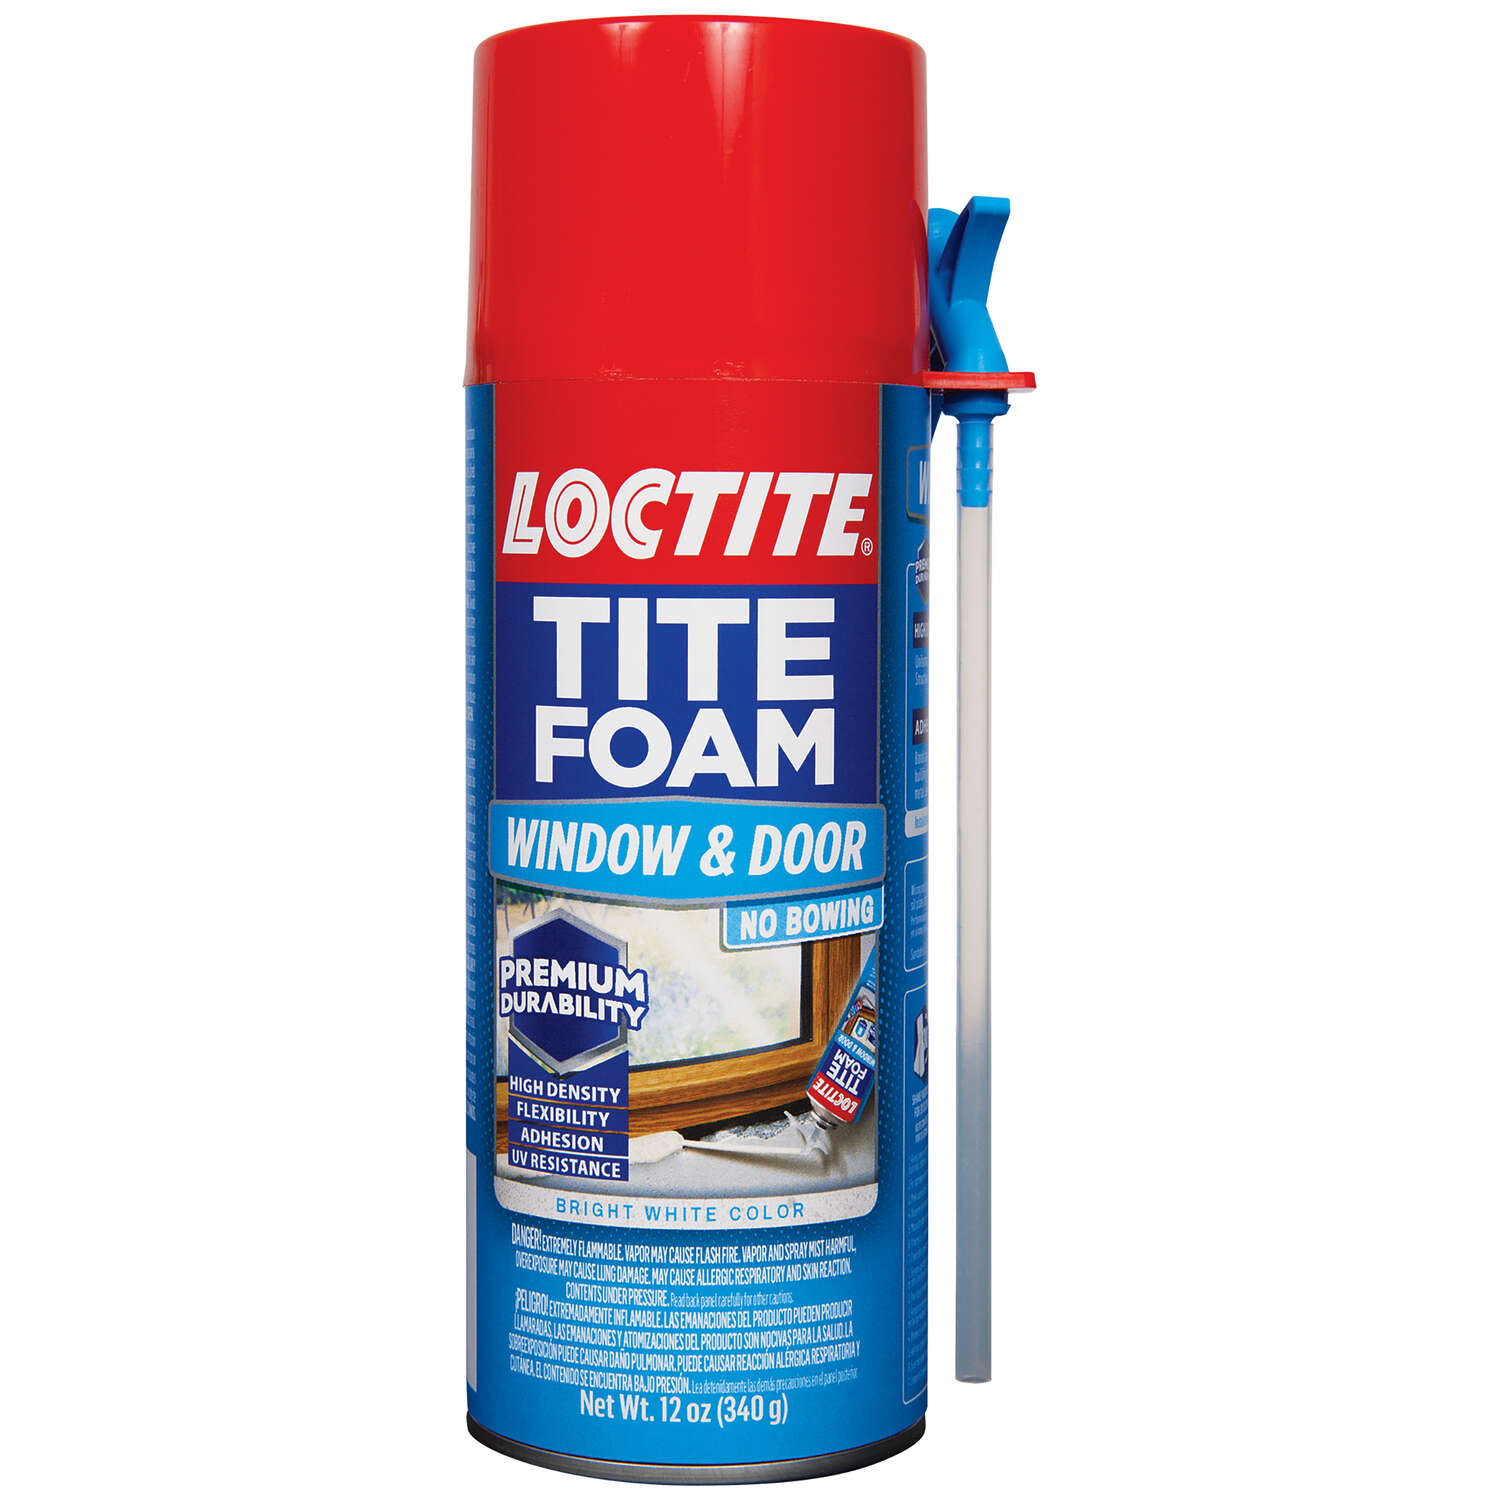 Loctite Tite Foam White Polyurethane Window and Door Foam Sealant 12 oz.